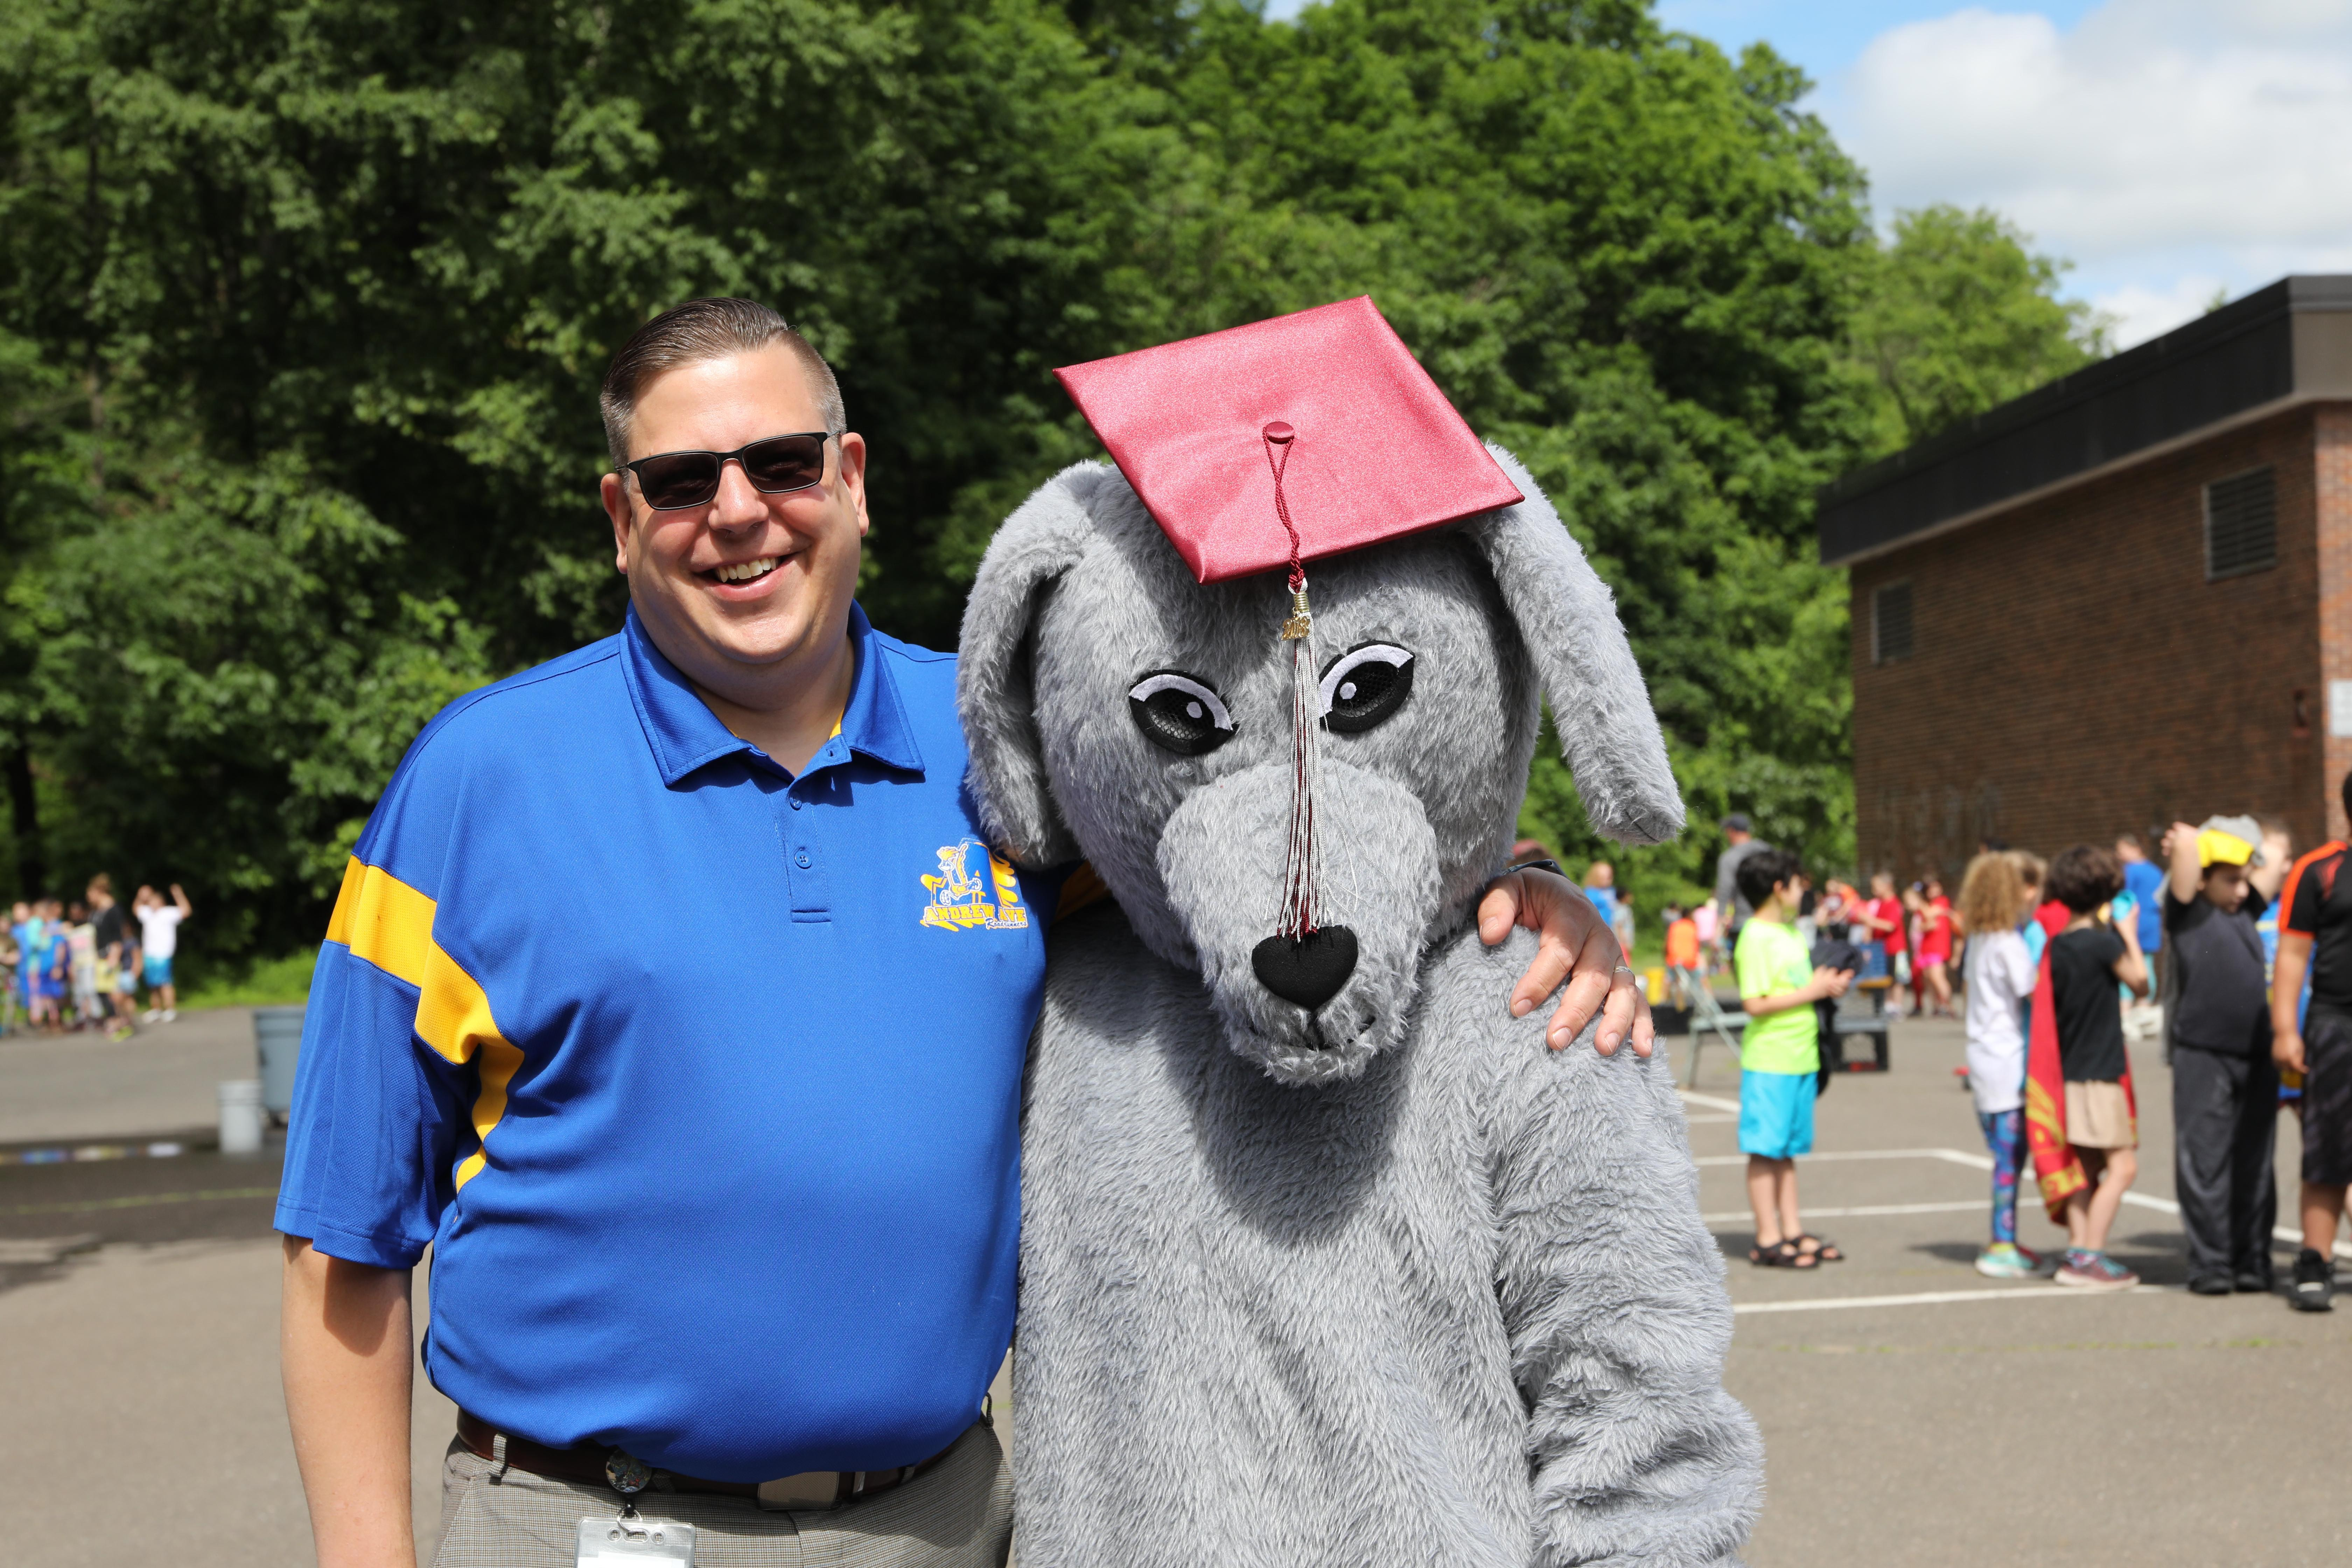 Principal Taran Gruber with greyhound mascot